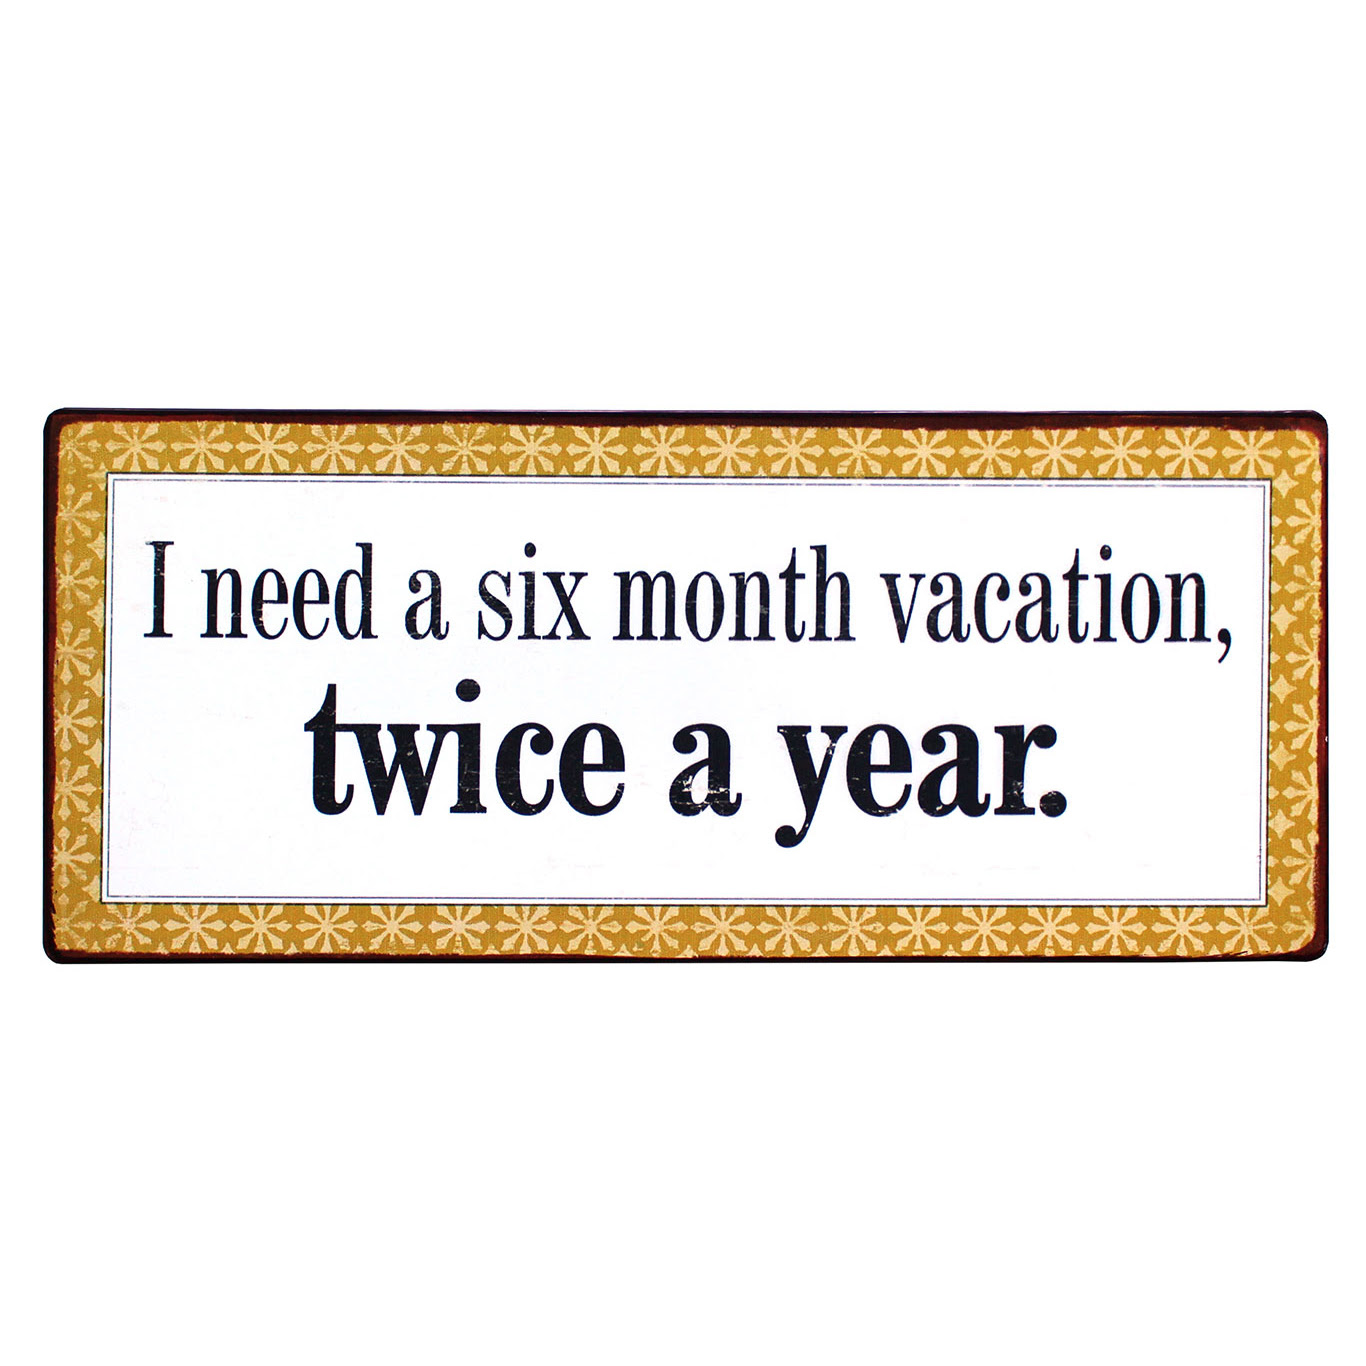 Tekstbord I need a six month vacation twice a year